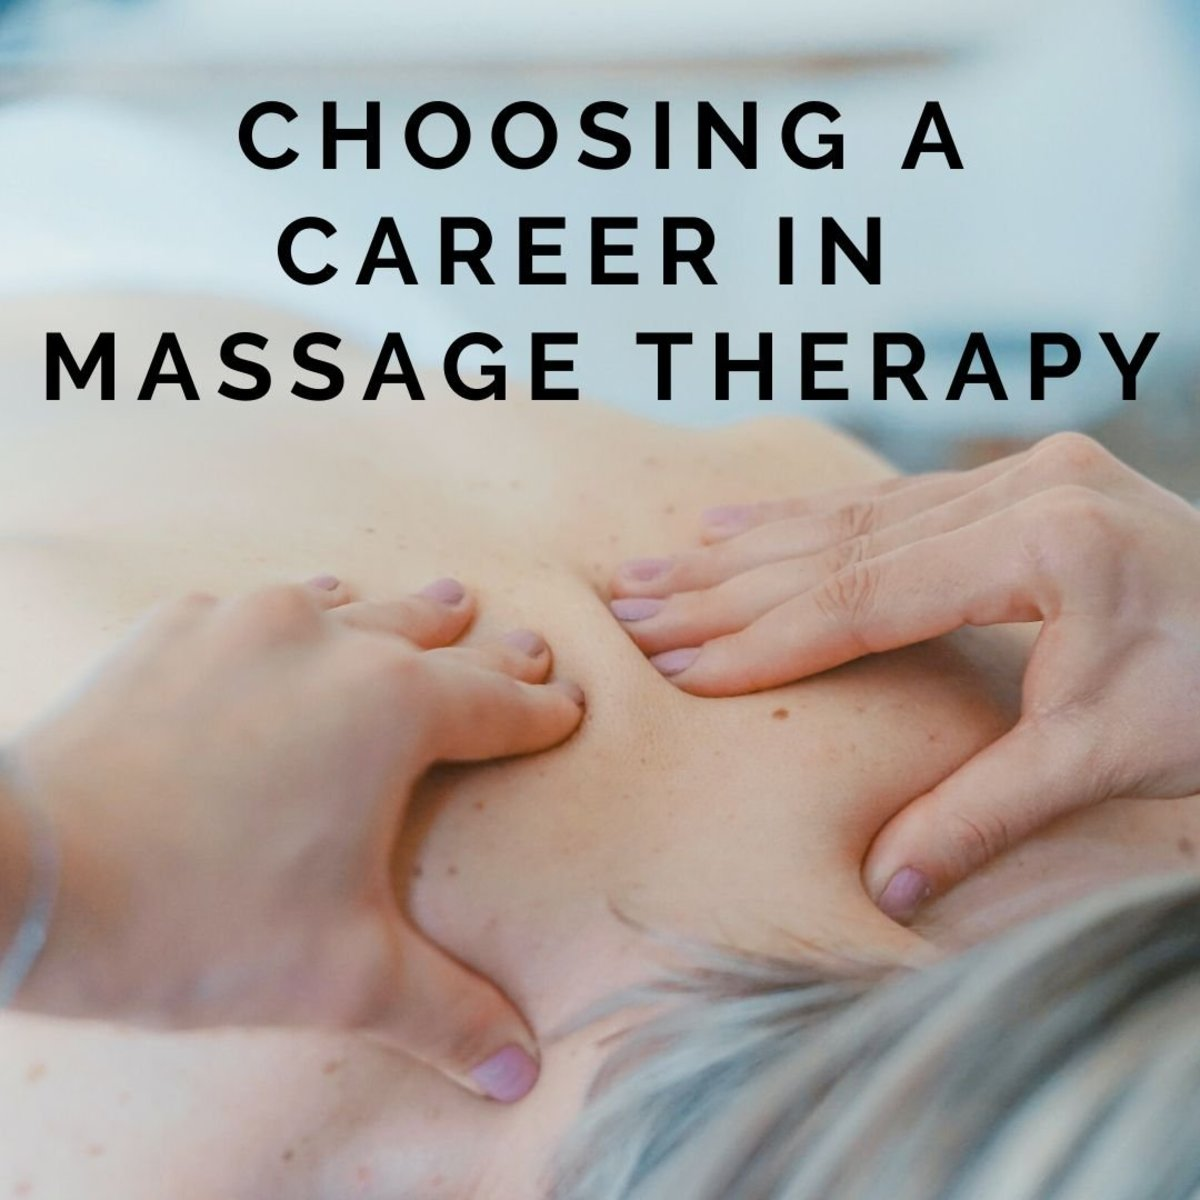 The Truth About a Career in Massage Therapy